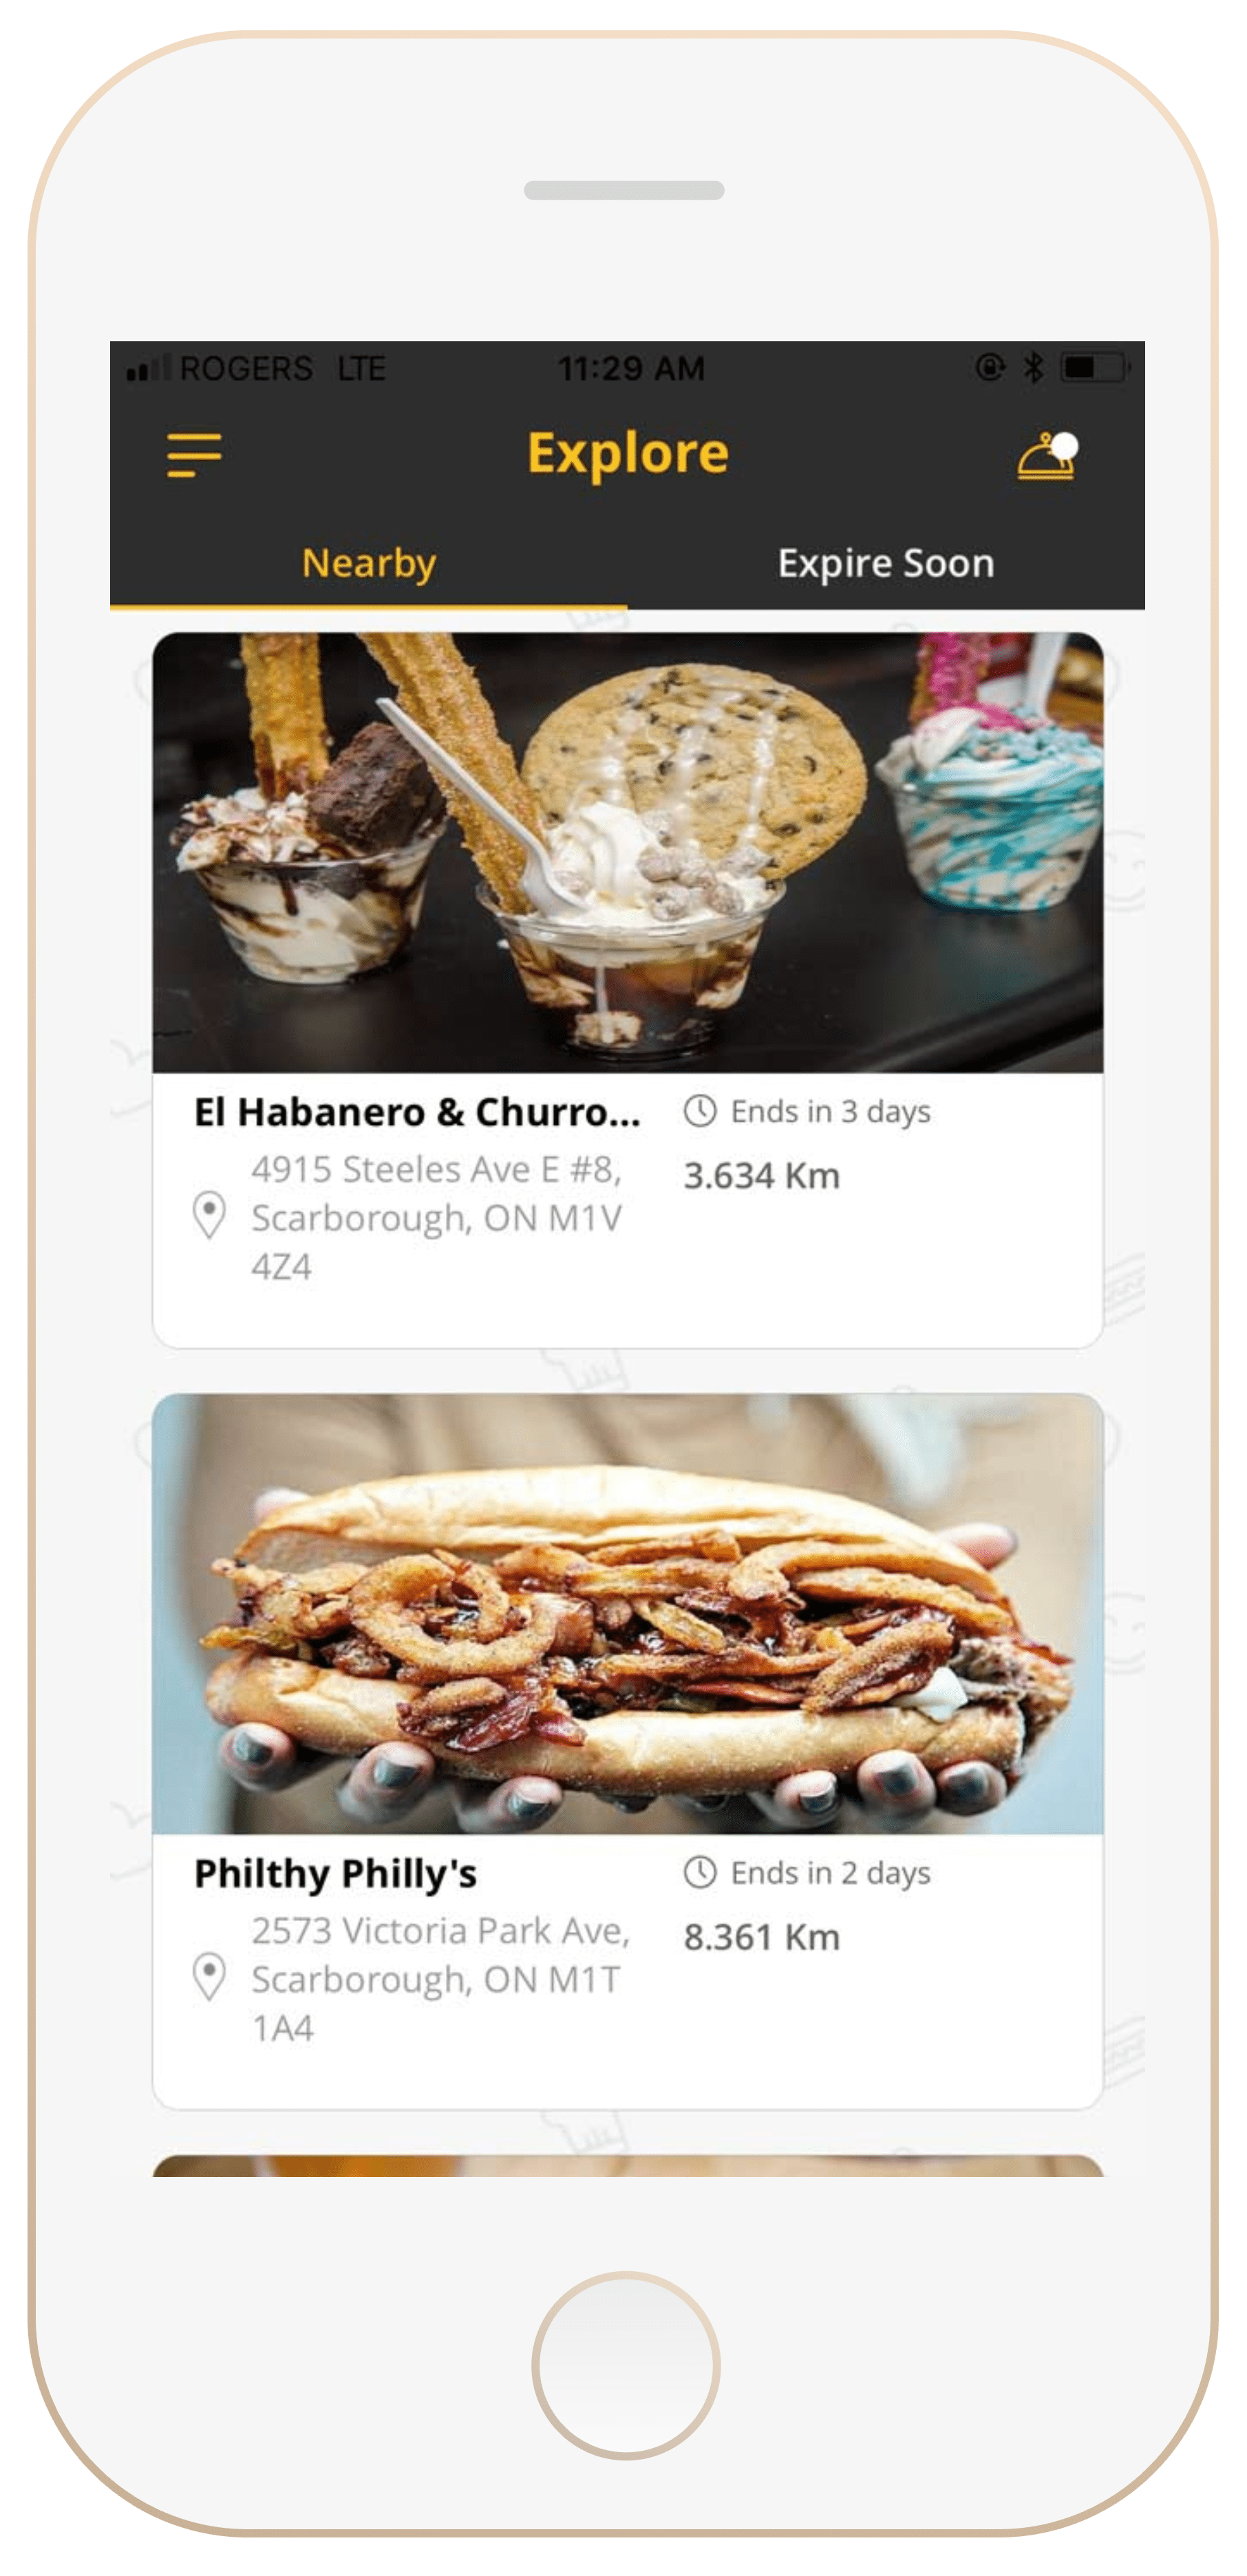 Mobile layout of browsing page node requests that include the location, name of restaurant, and pictures of food.